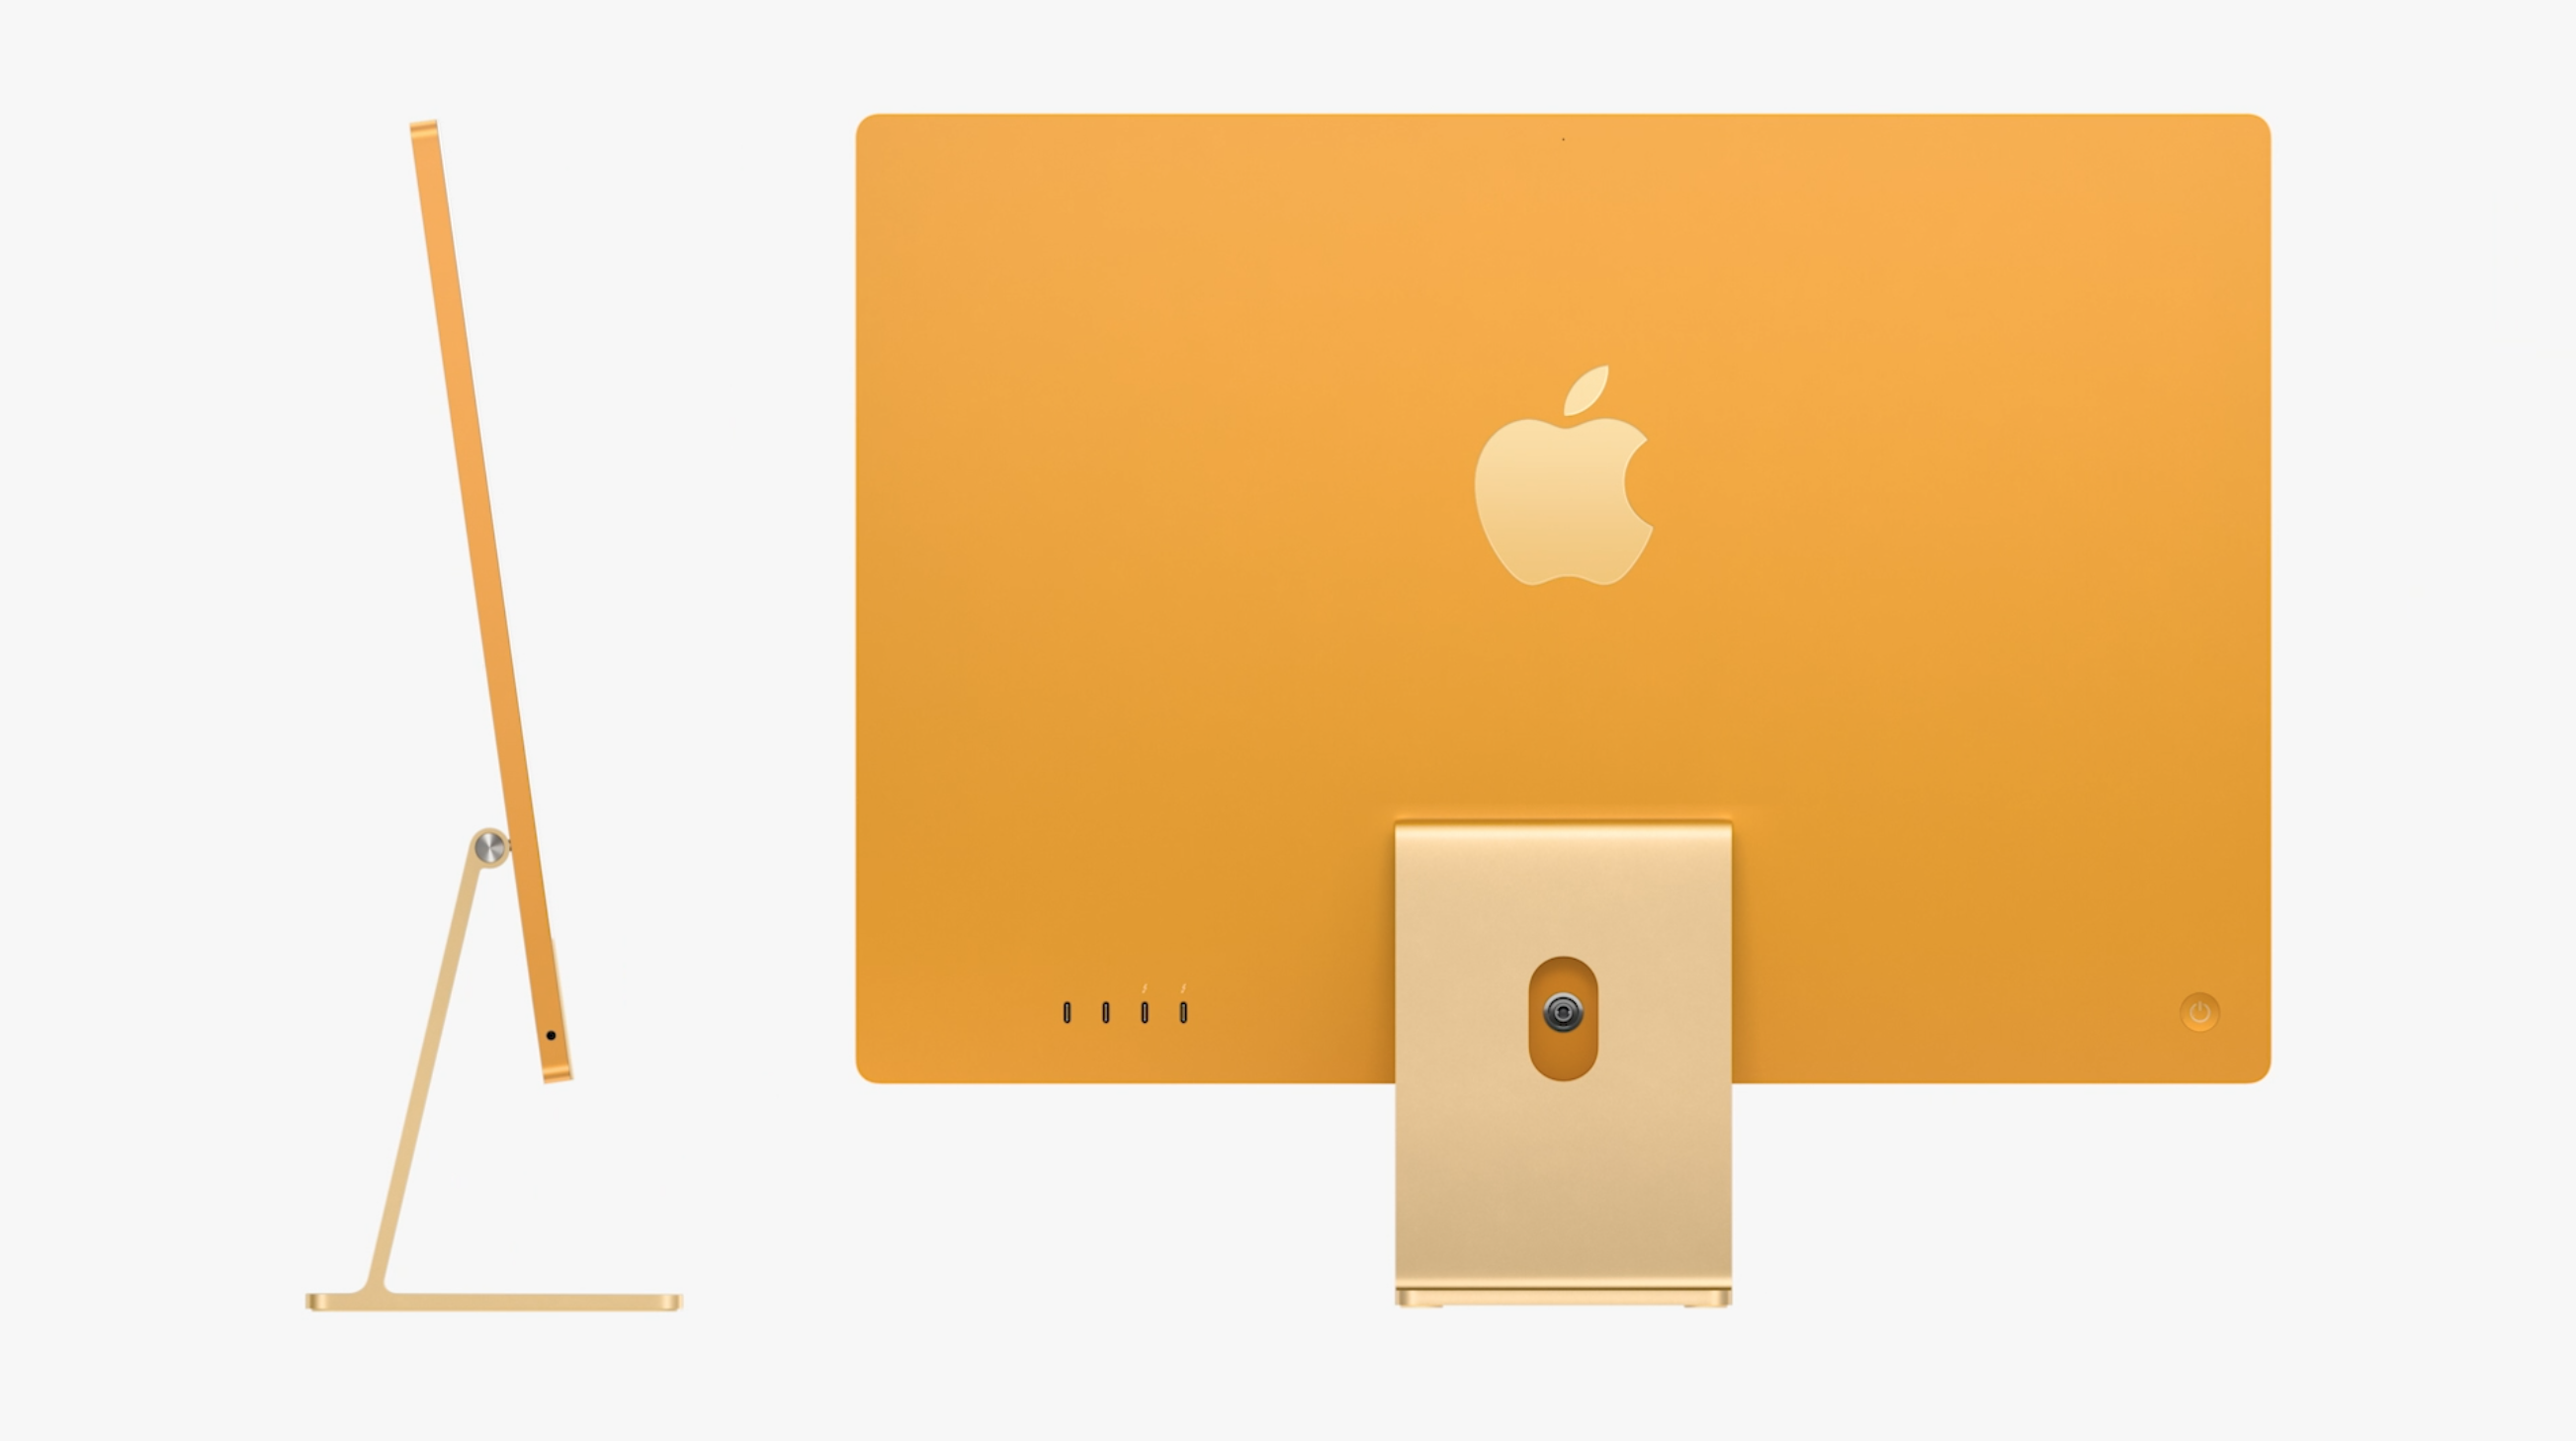 Apple iMac 2021 yellow